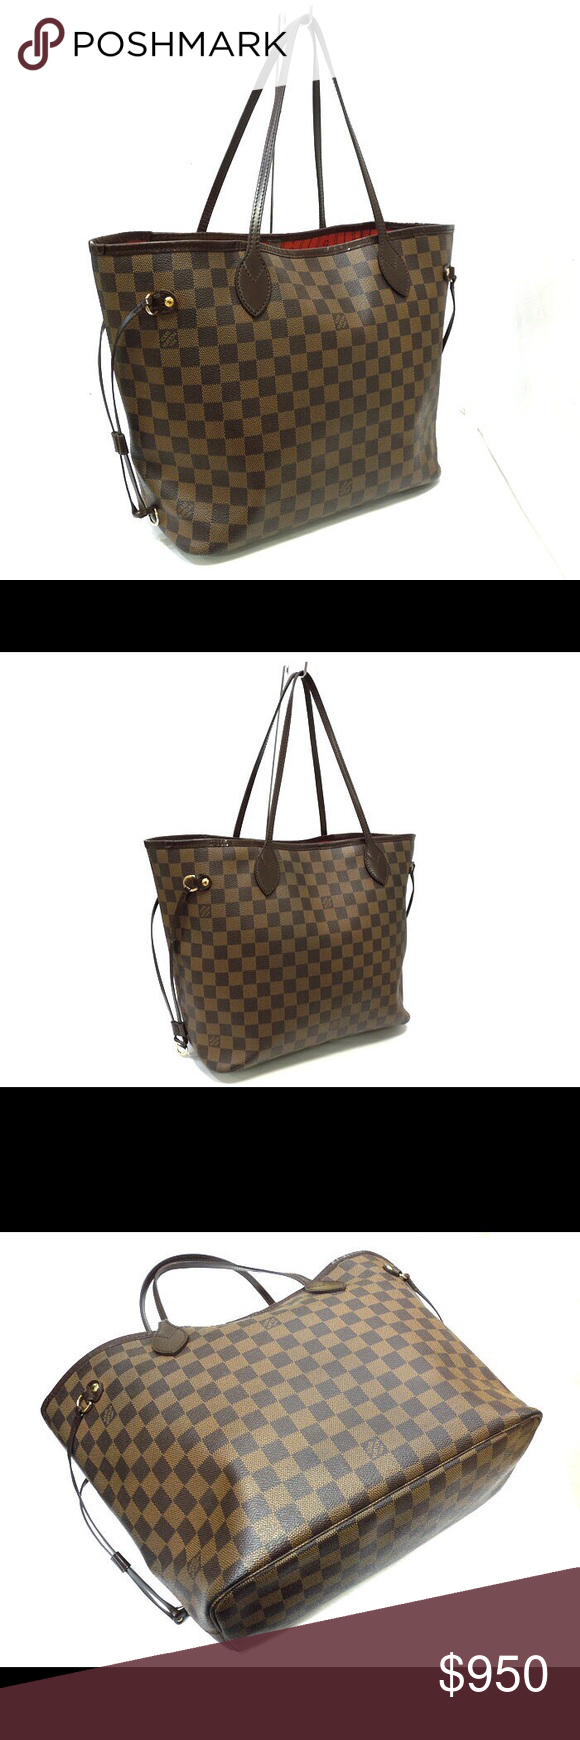 b97850e24dbc Authentic louis vuitton neverfull MM damier ebene Bag will be authenticated  by poshmark.very good condition.no trades or low offers Louis Vuitton Bags  ...